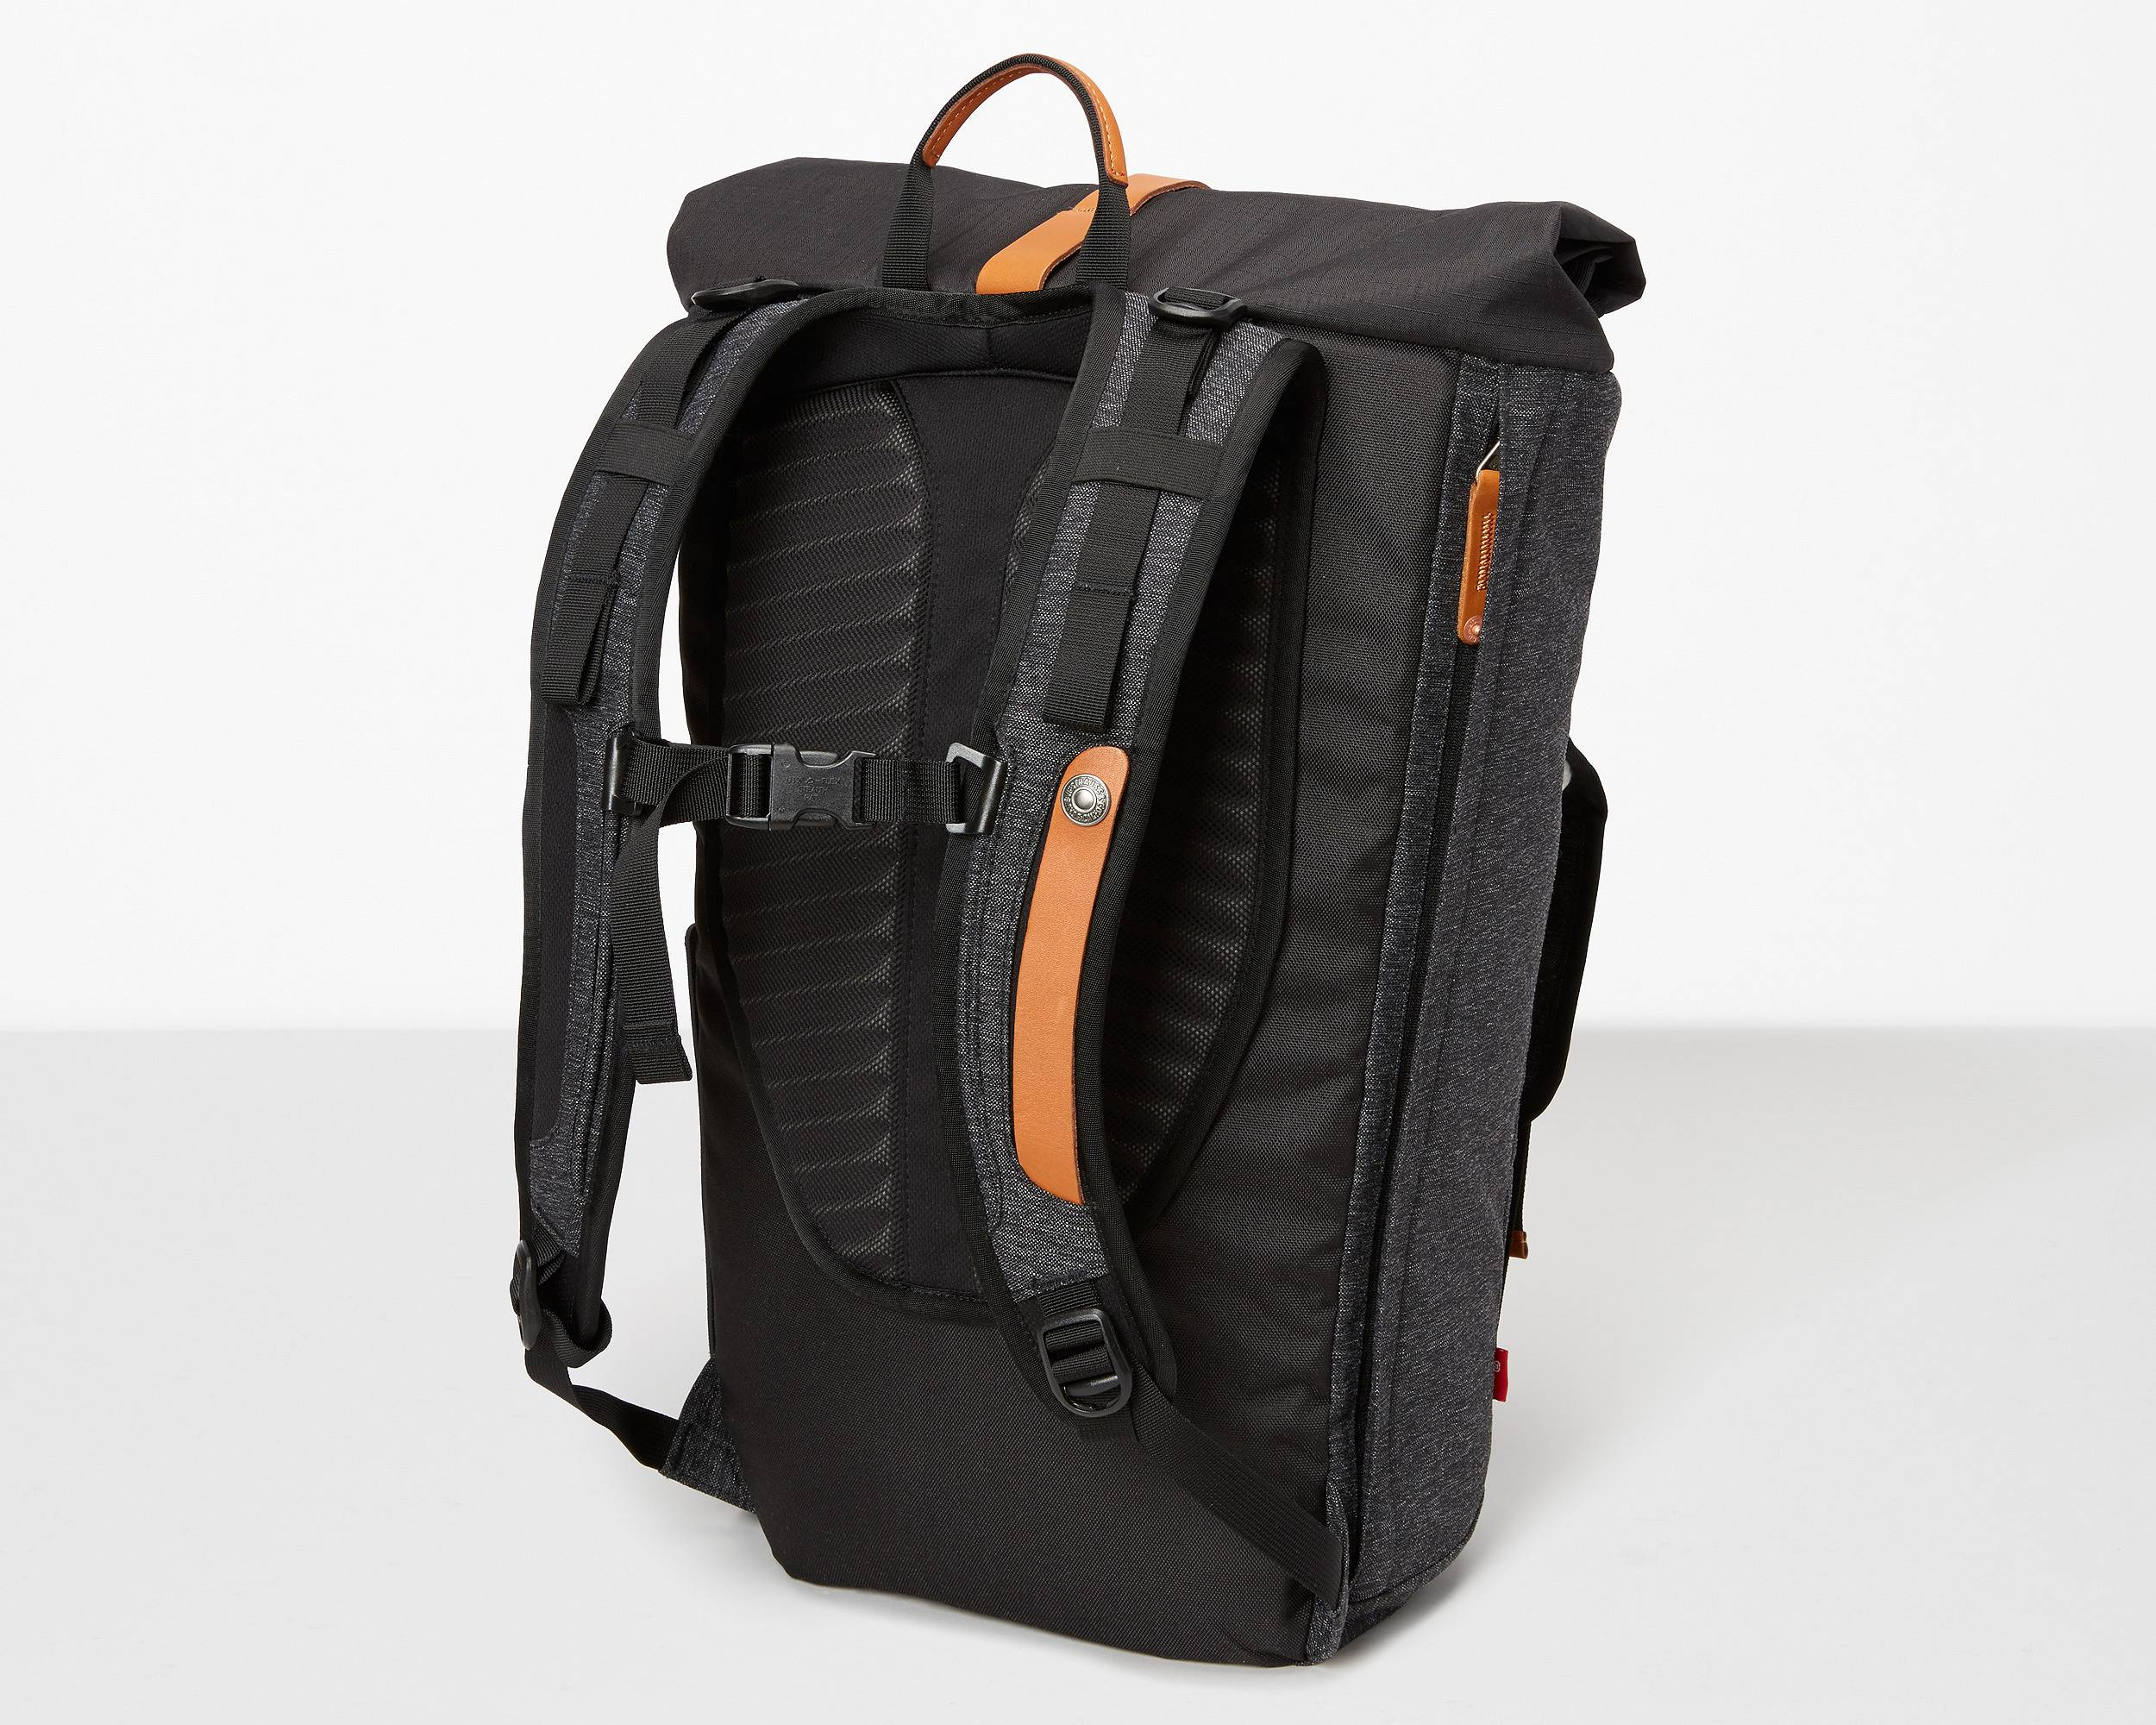 Levis -Commuter-Rool-Top-Backpack-4